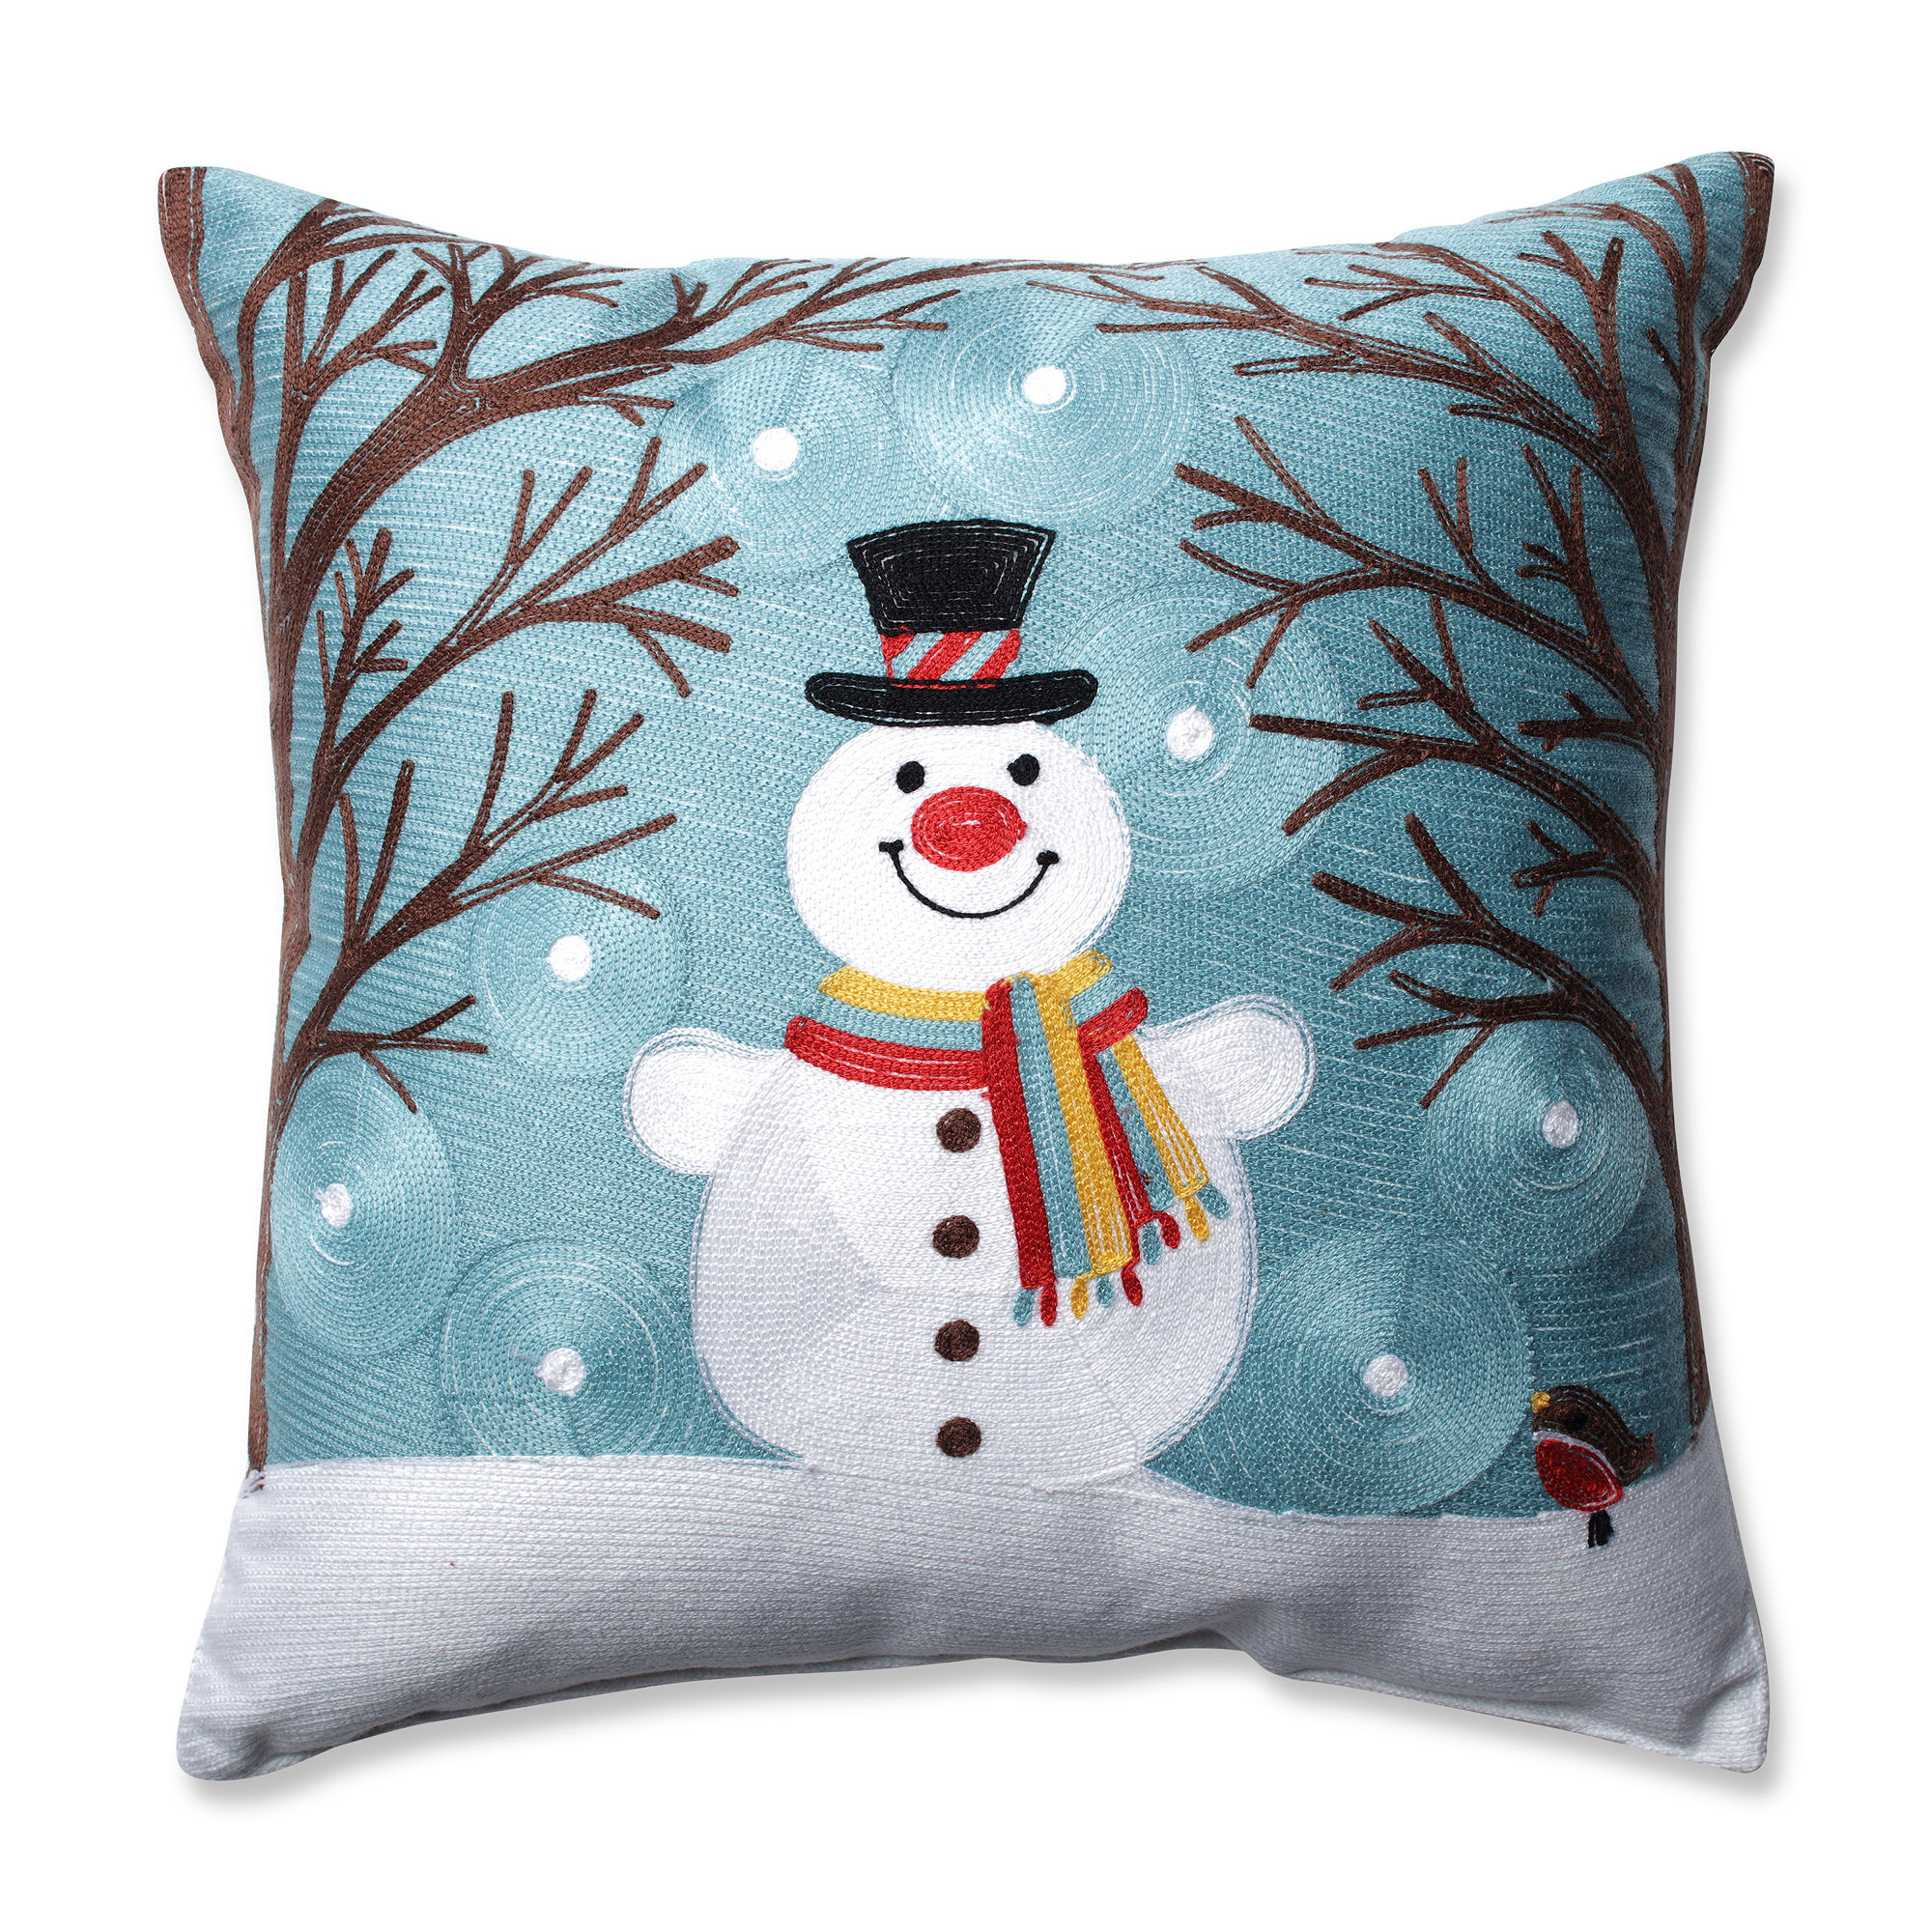 UPC 751379600079 product image for Pillow Perfect Winter Wonderland Frost 16.5-inch Throw Pillow | upcitemdb.com